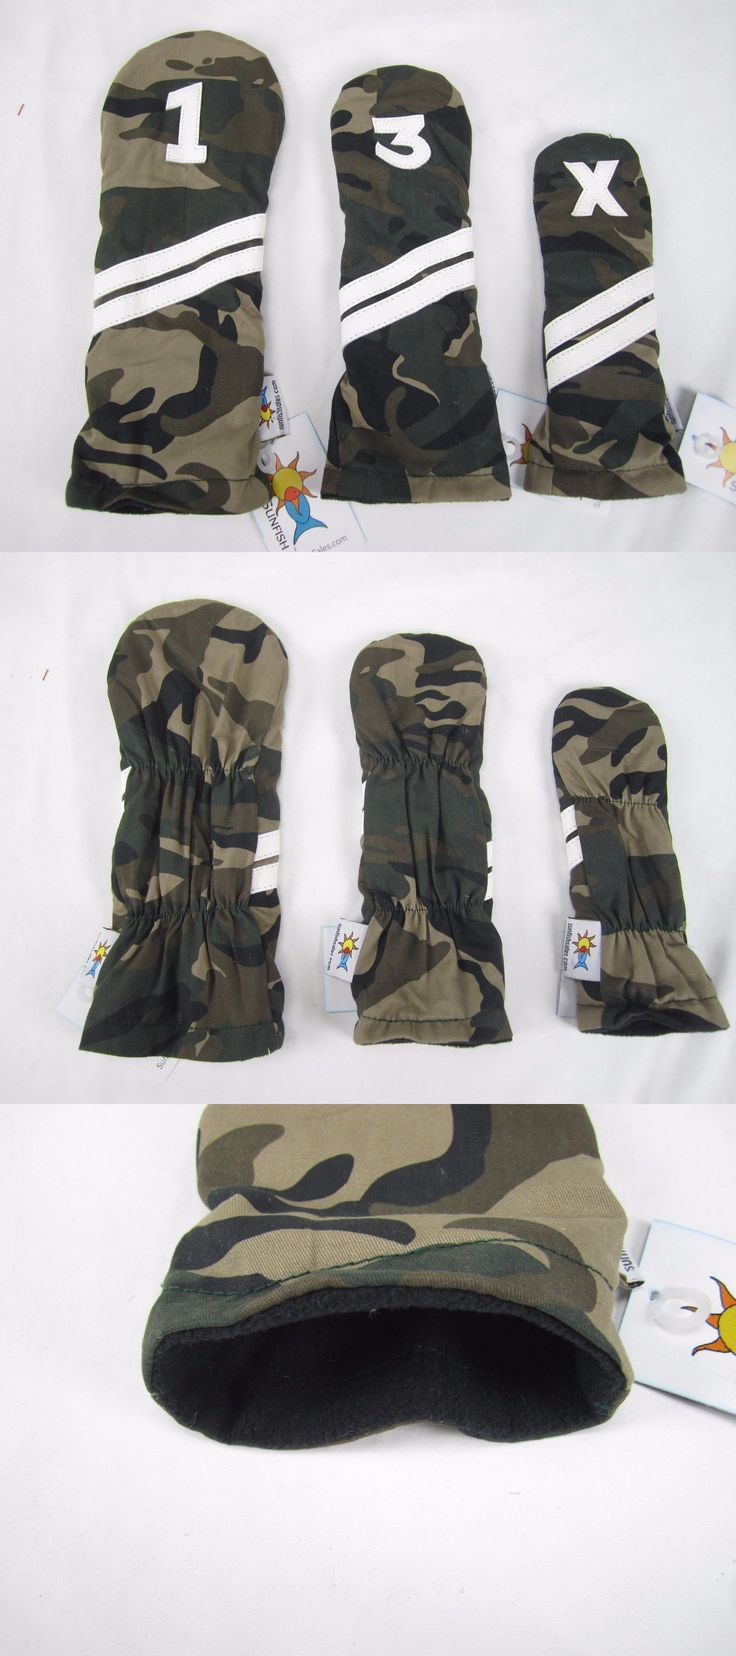 Club Head Covers 18930: Sunfish Camouflage Golf Headcover Set - Dr, Fw, Hb Military Camo Army -> BUY IT NOW ONLY: $69.99 on eBay!